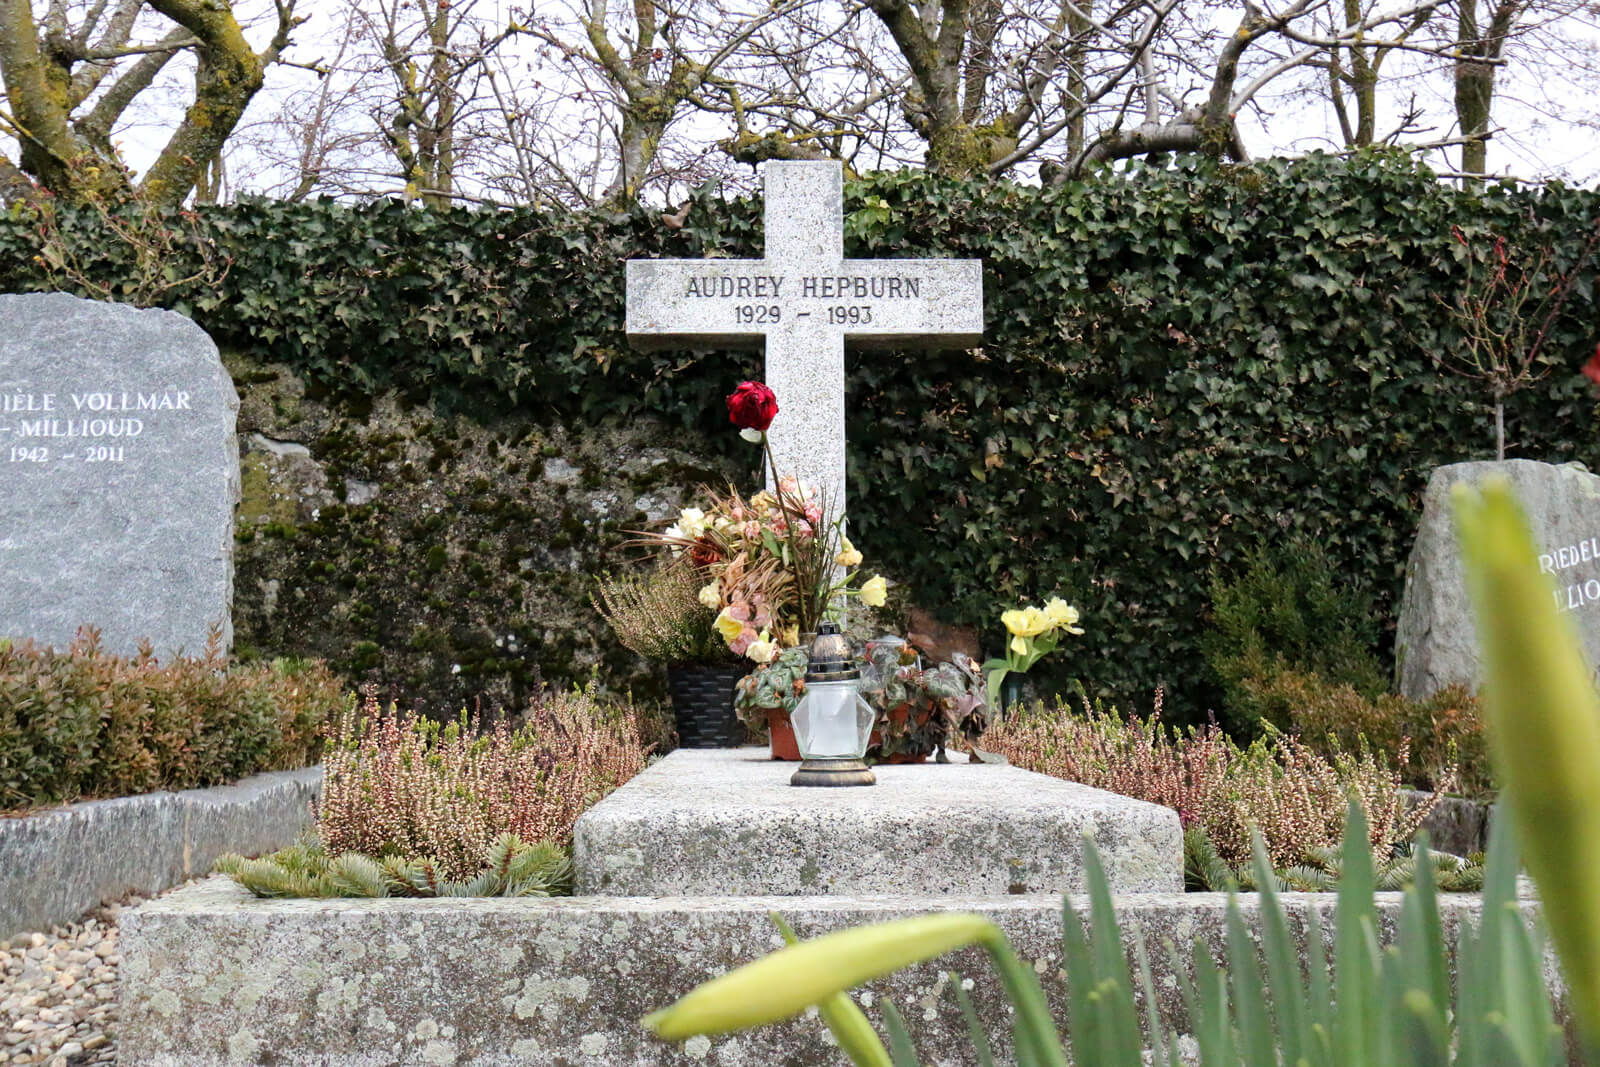 Audrey Hepburn Grave in Tolochenaz, Switzerland